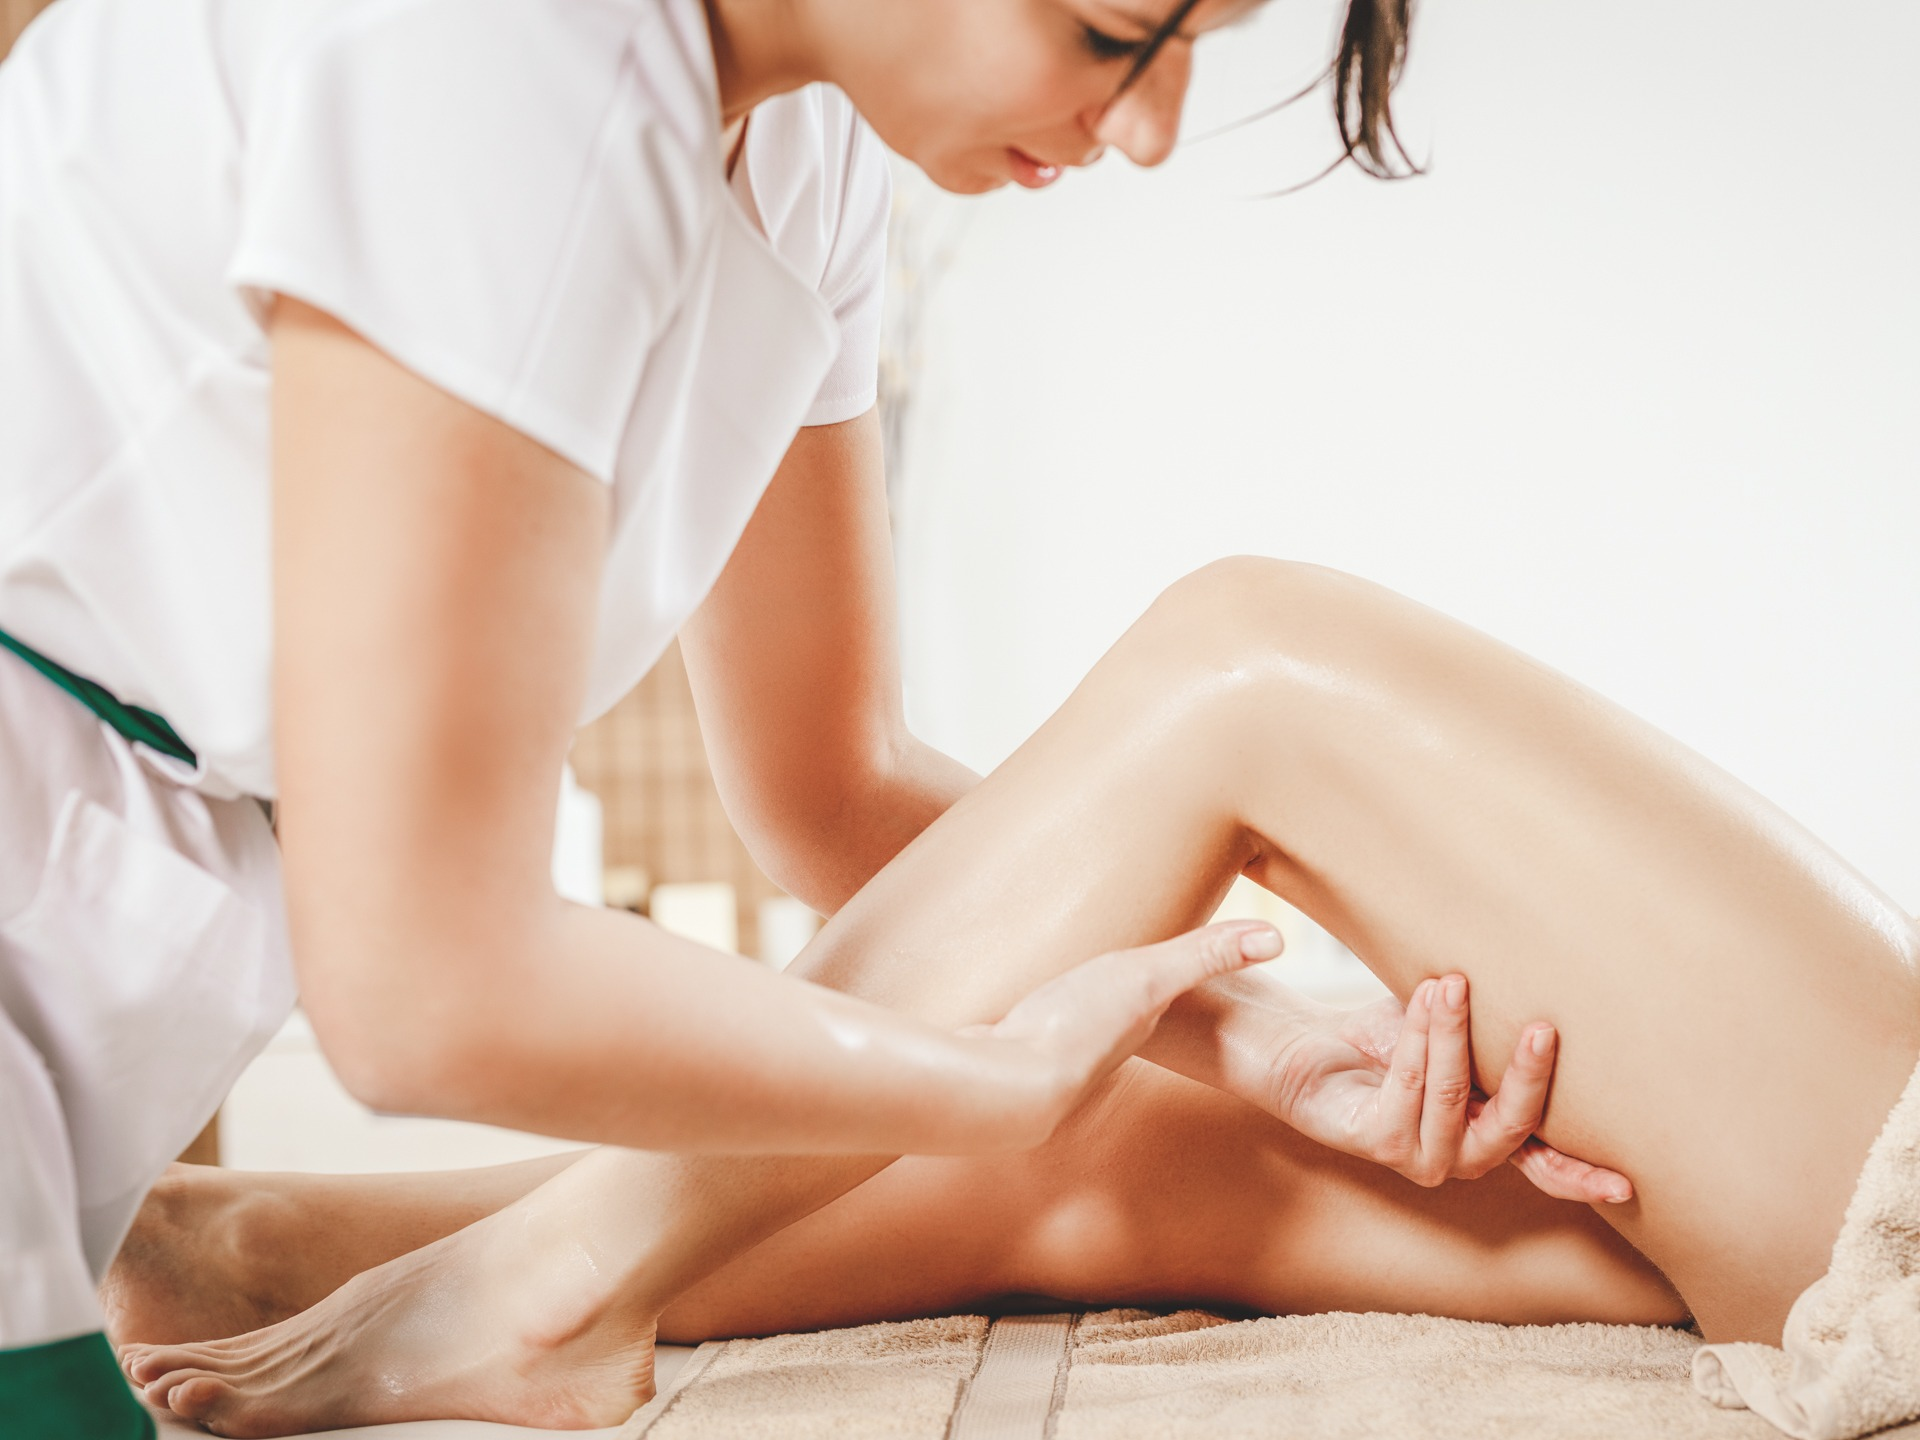 Young female massage therapist giving a relax massage to a client.